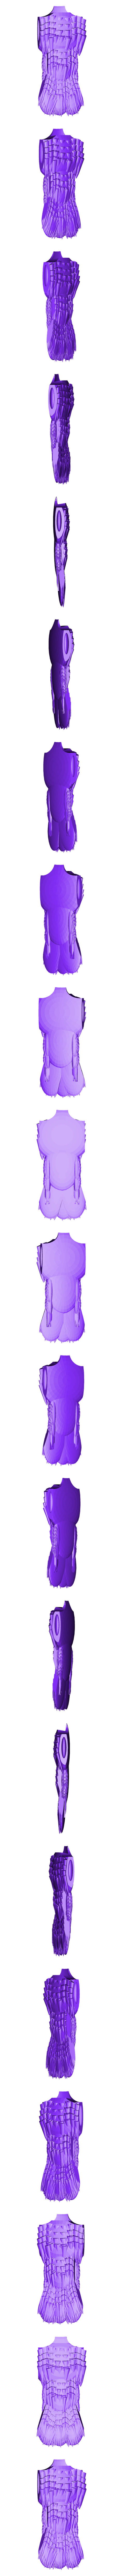 phoenix_torso.stl Download free STL file Elf Phoenix • 3D printing model, mrhers2